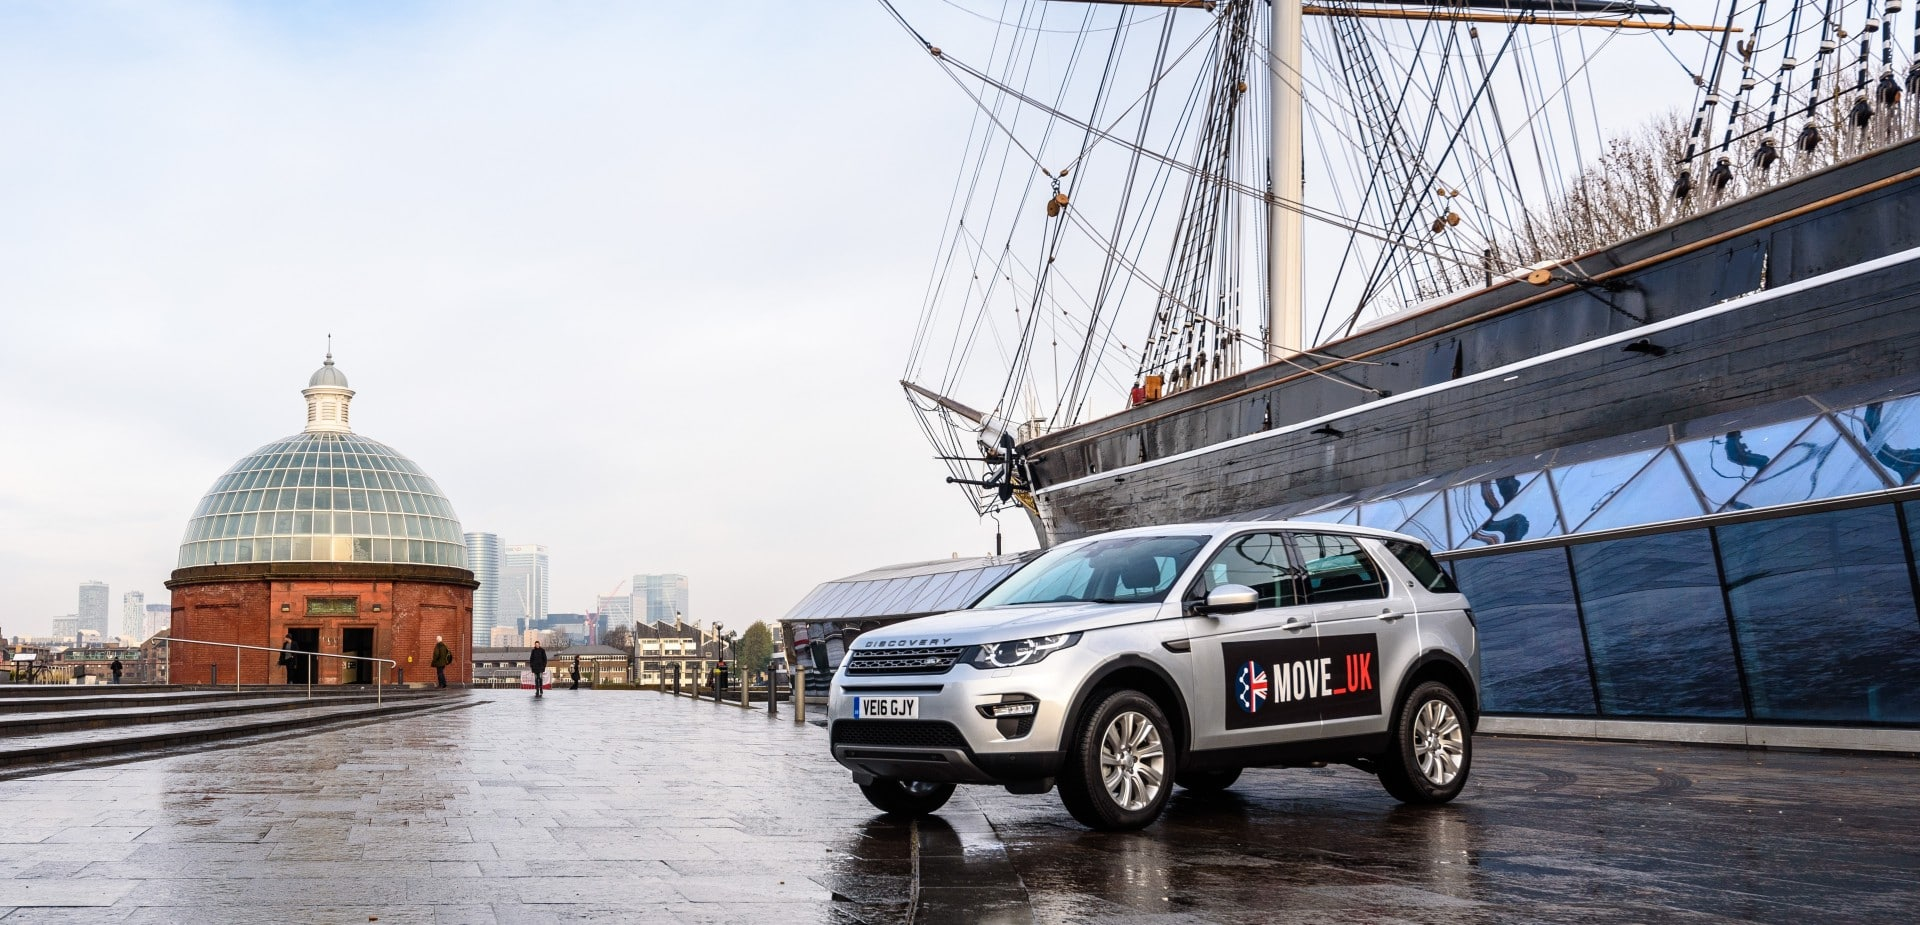 Car labeled Move_Uk in front of a large ship